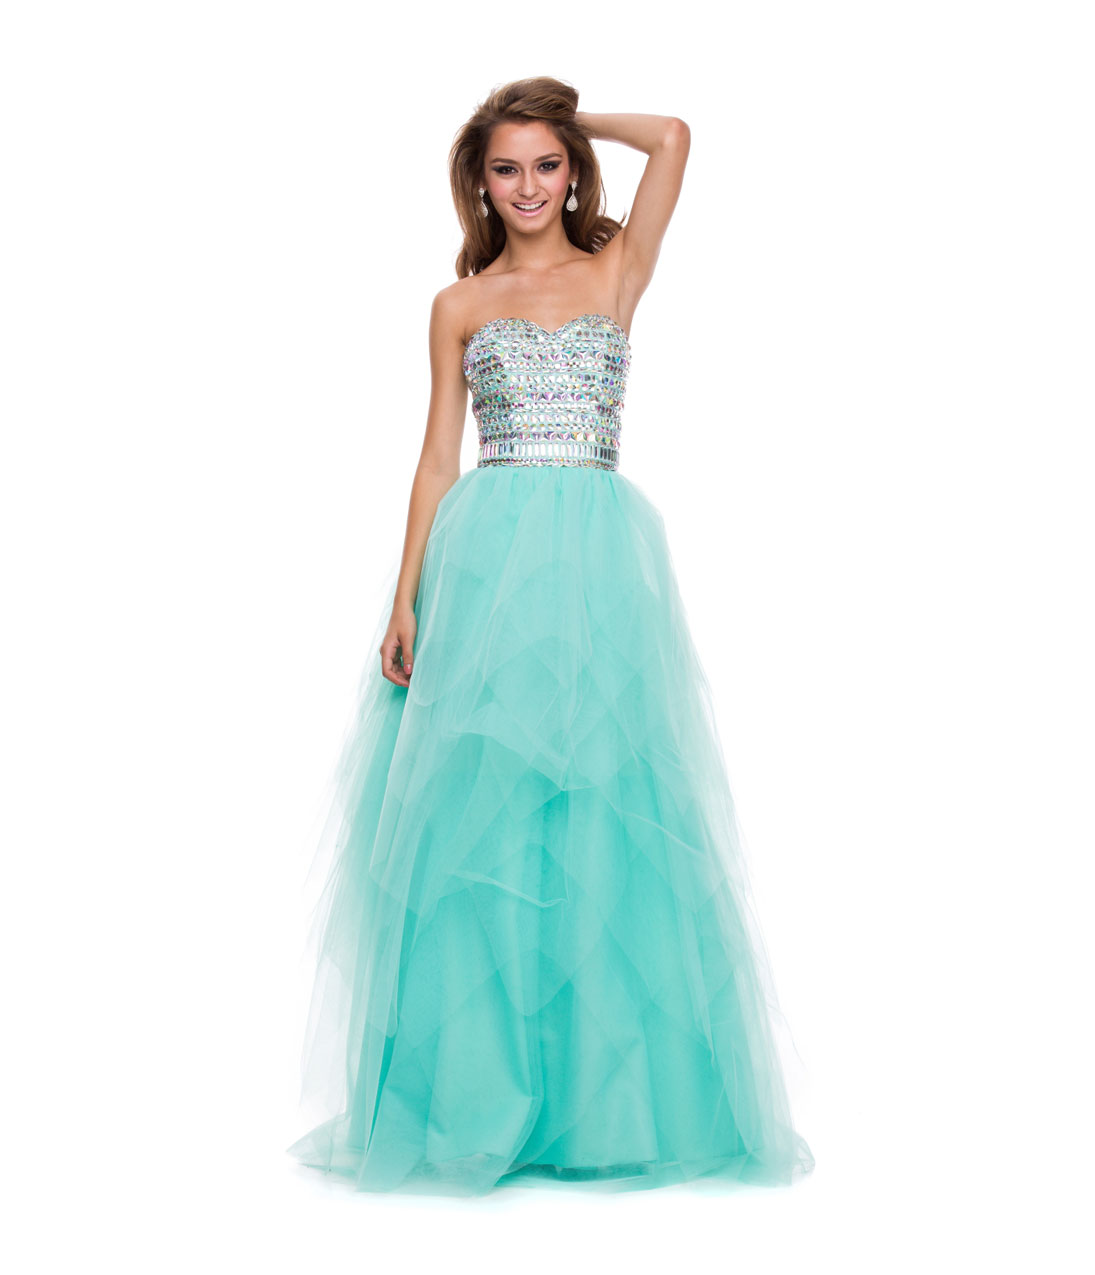 Prom Dresses - Mint Green Tulle & Stone Strapless Gown - Unique ...